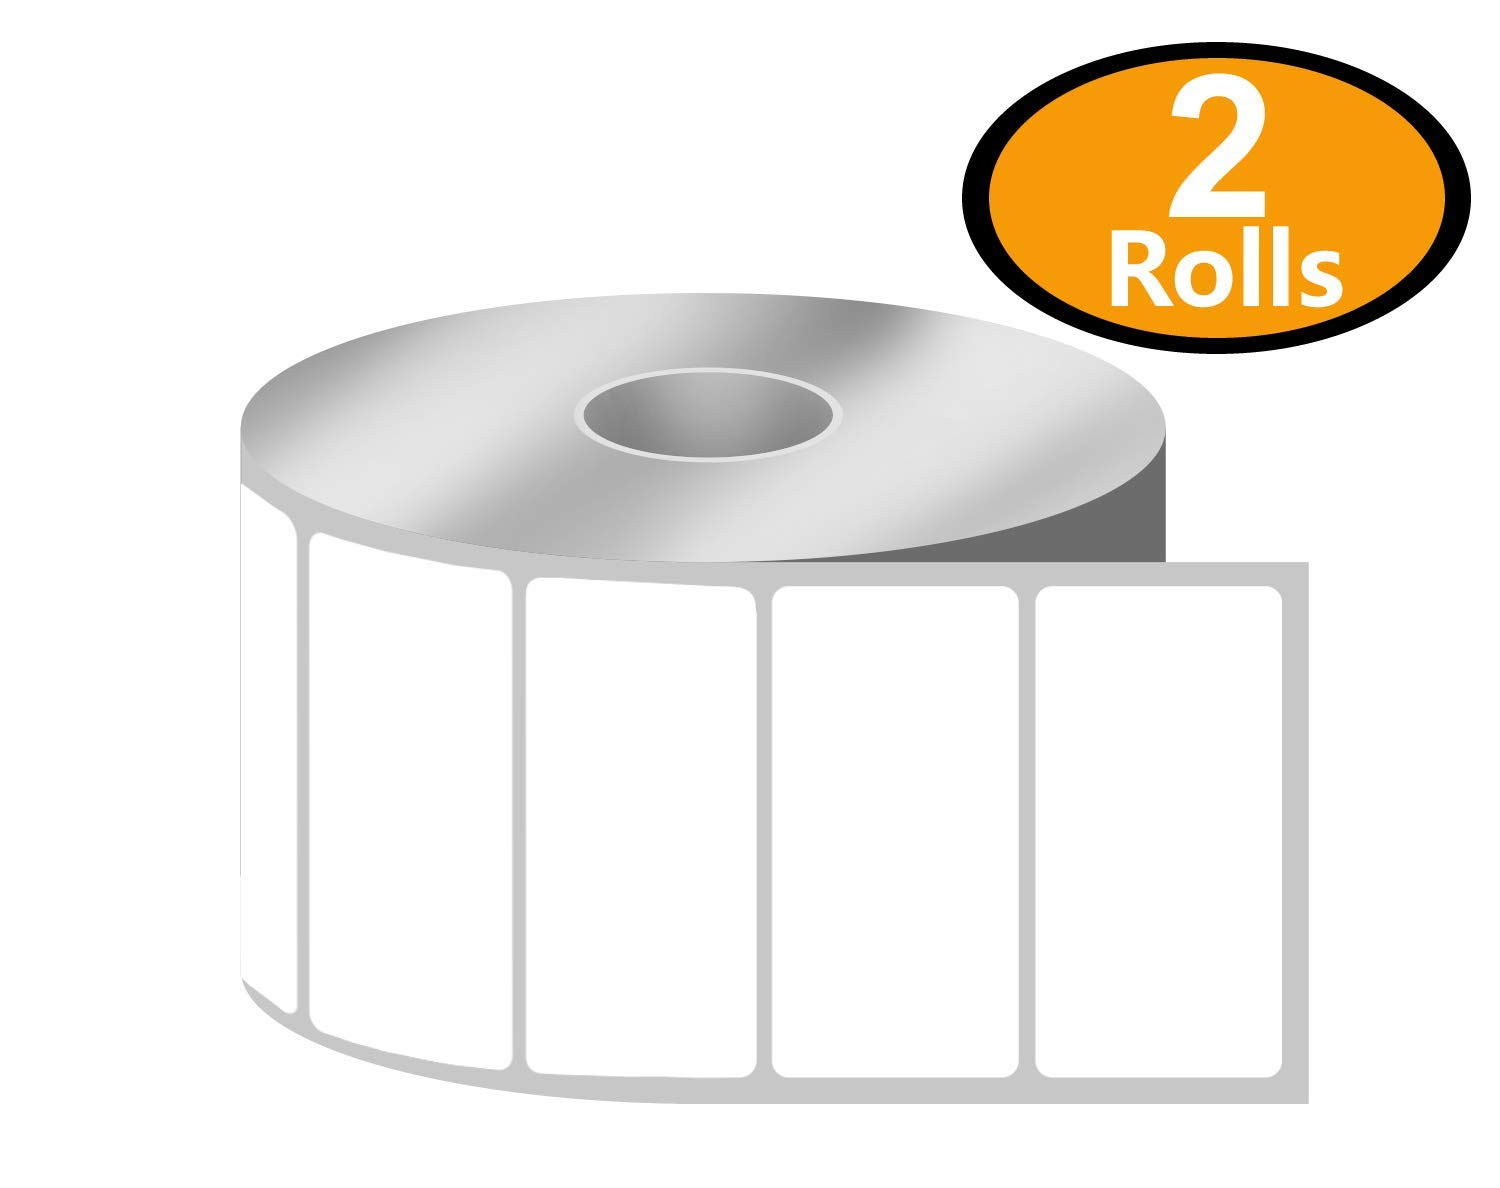 [1 Rolls, 1300/Roll] 2' x 1' Direct Thermal Zebra/Eltron Compatible Labels - Premium Resolution & Adhesive 1300/Roll] 2 x 1 Direct Thermal Zebra/Eltron Compatible Labels - Premium Resolution & Adhesive BETCKEY